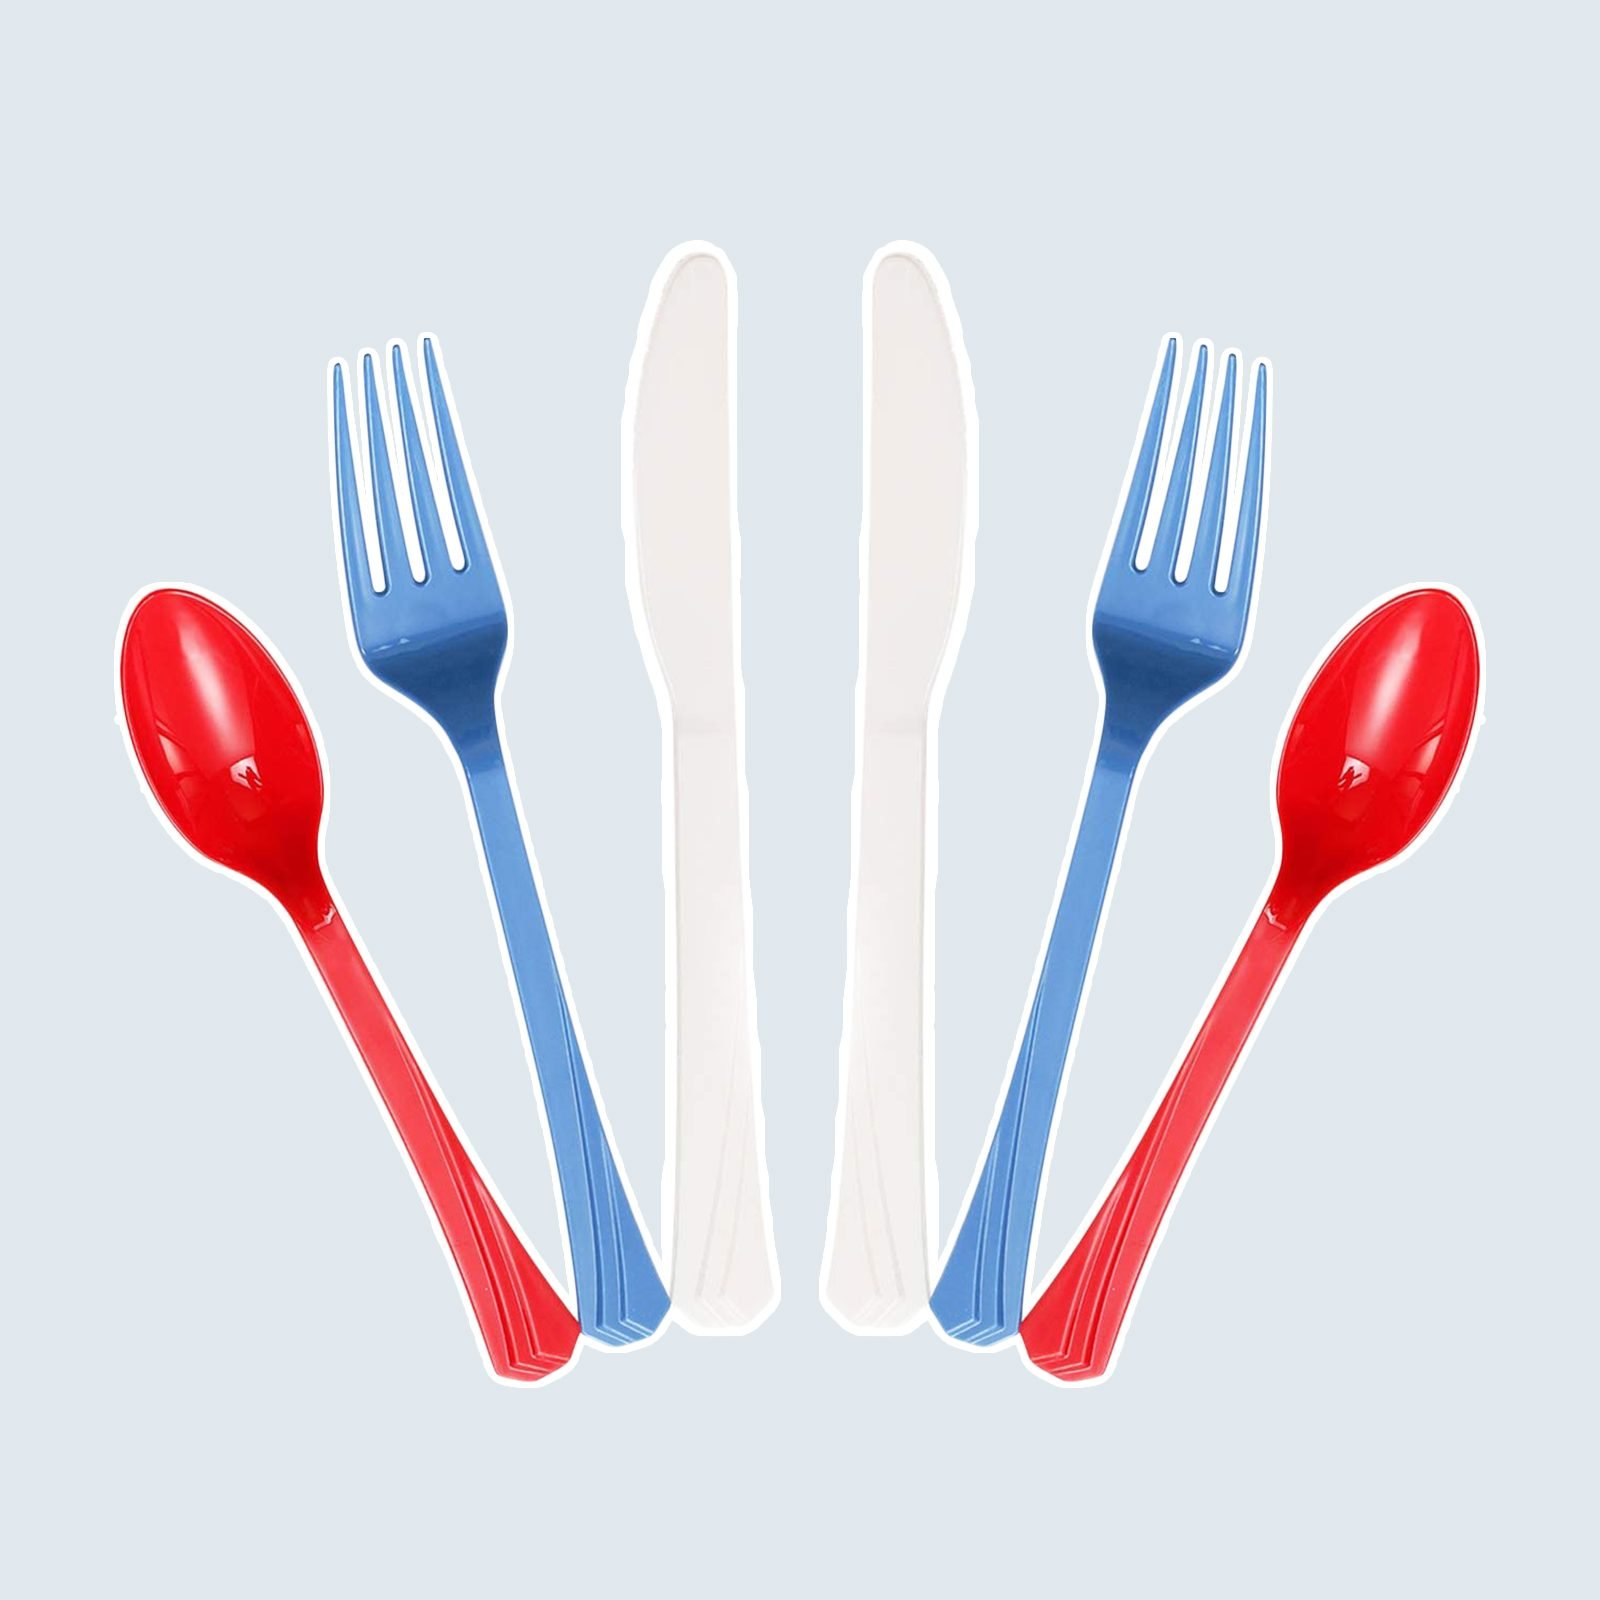 Red, White, And Blue Cutlery